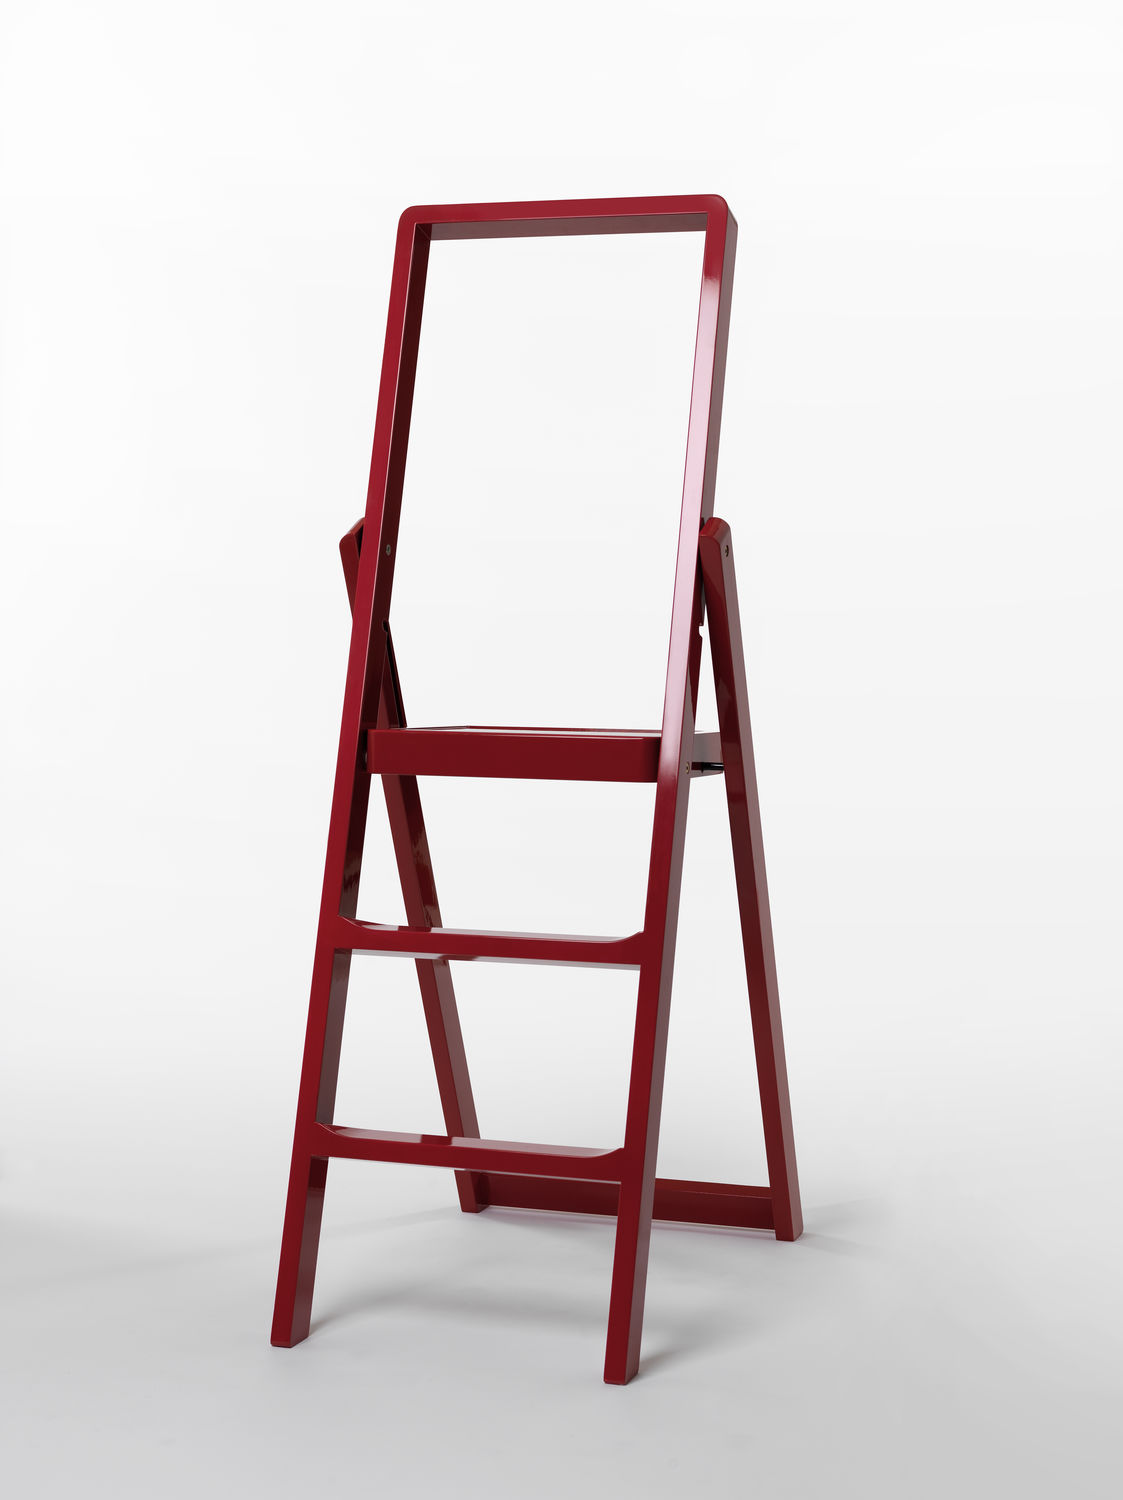 Commercial step ladder - by Karl Malmvall  sc 1 st  ArchiExpo : commercial step stool - islam-shia.org